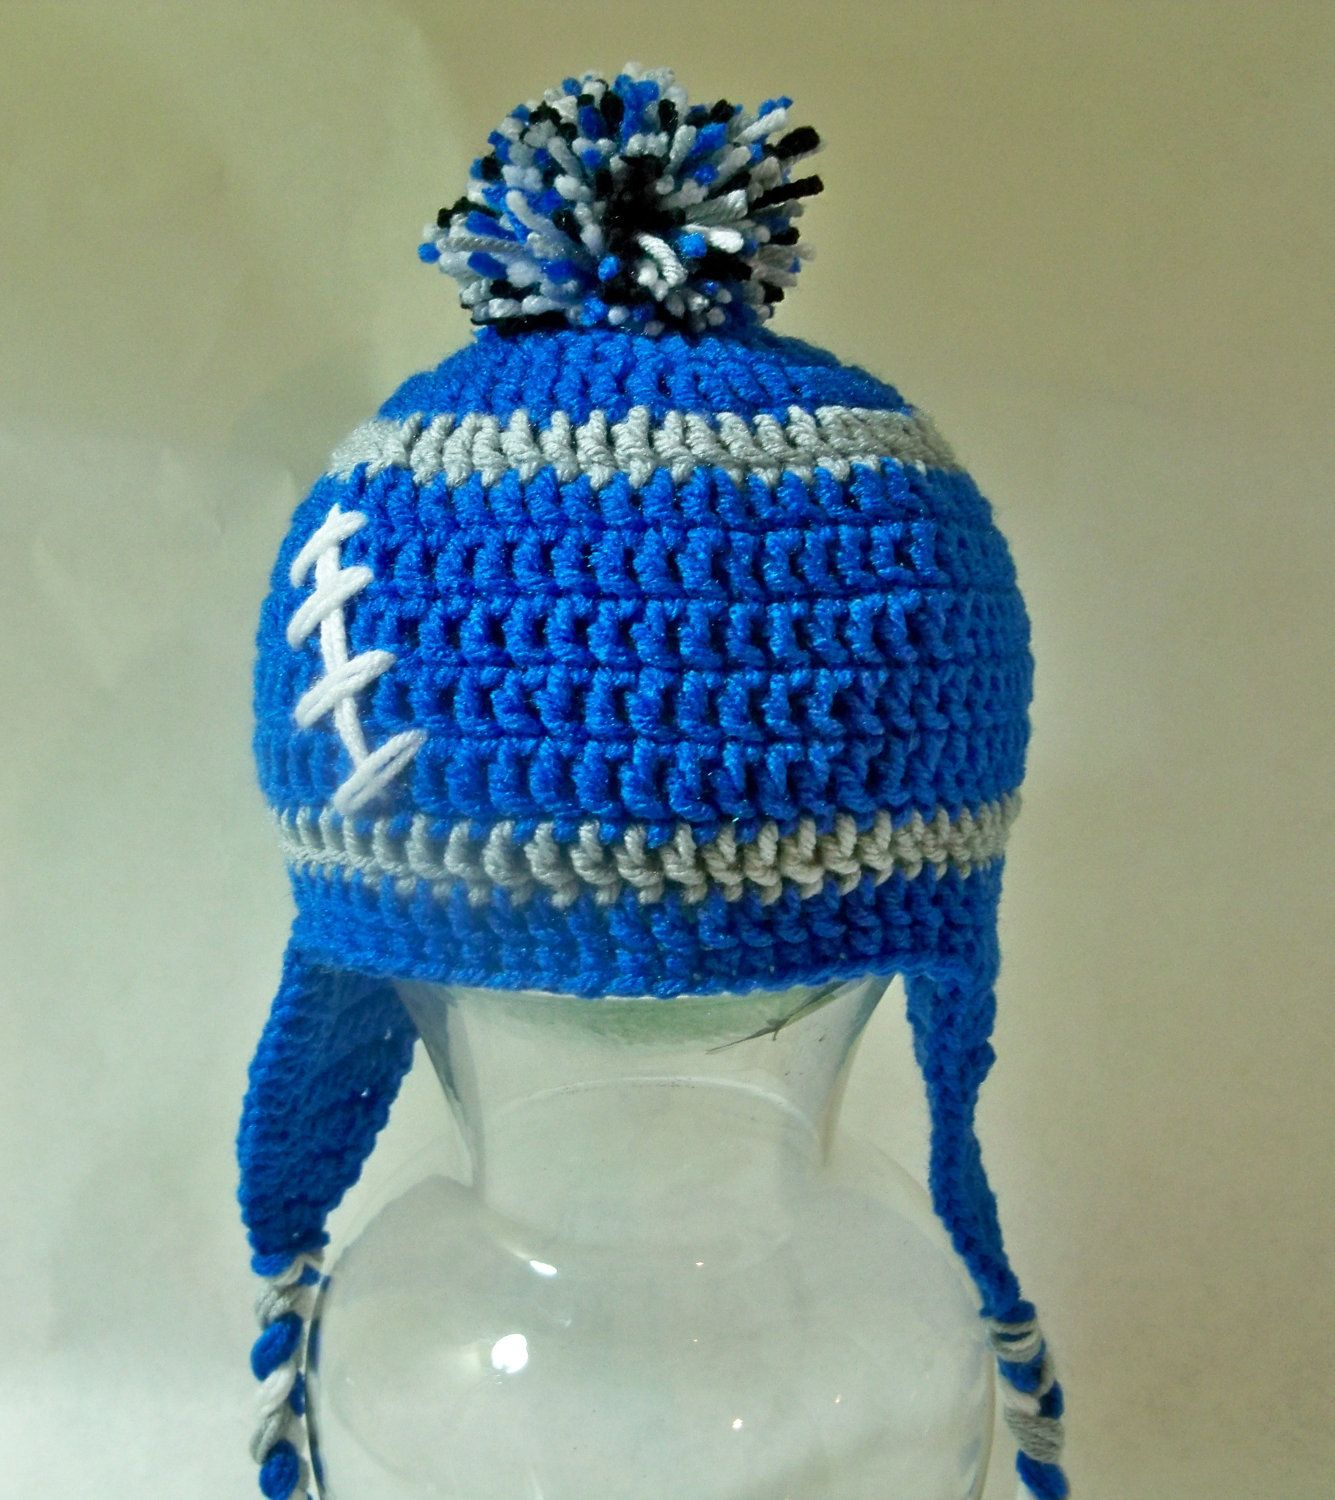 Crocheted baby toddler football beanie Detroit Lions 12-18 month size Any  team 8f25d84c56d0